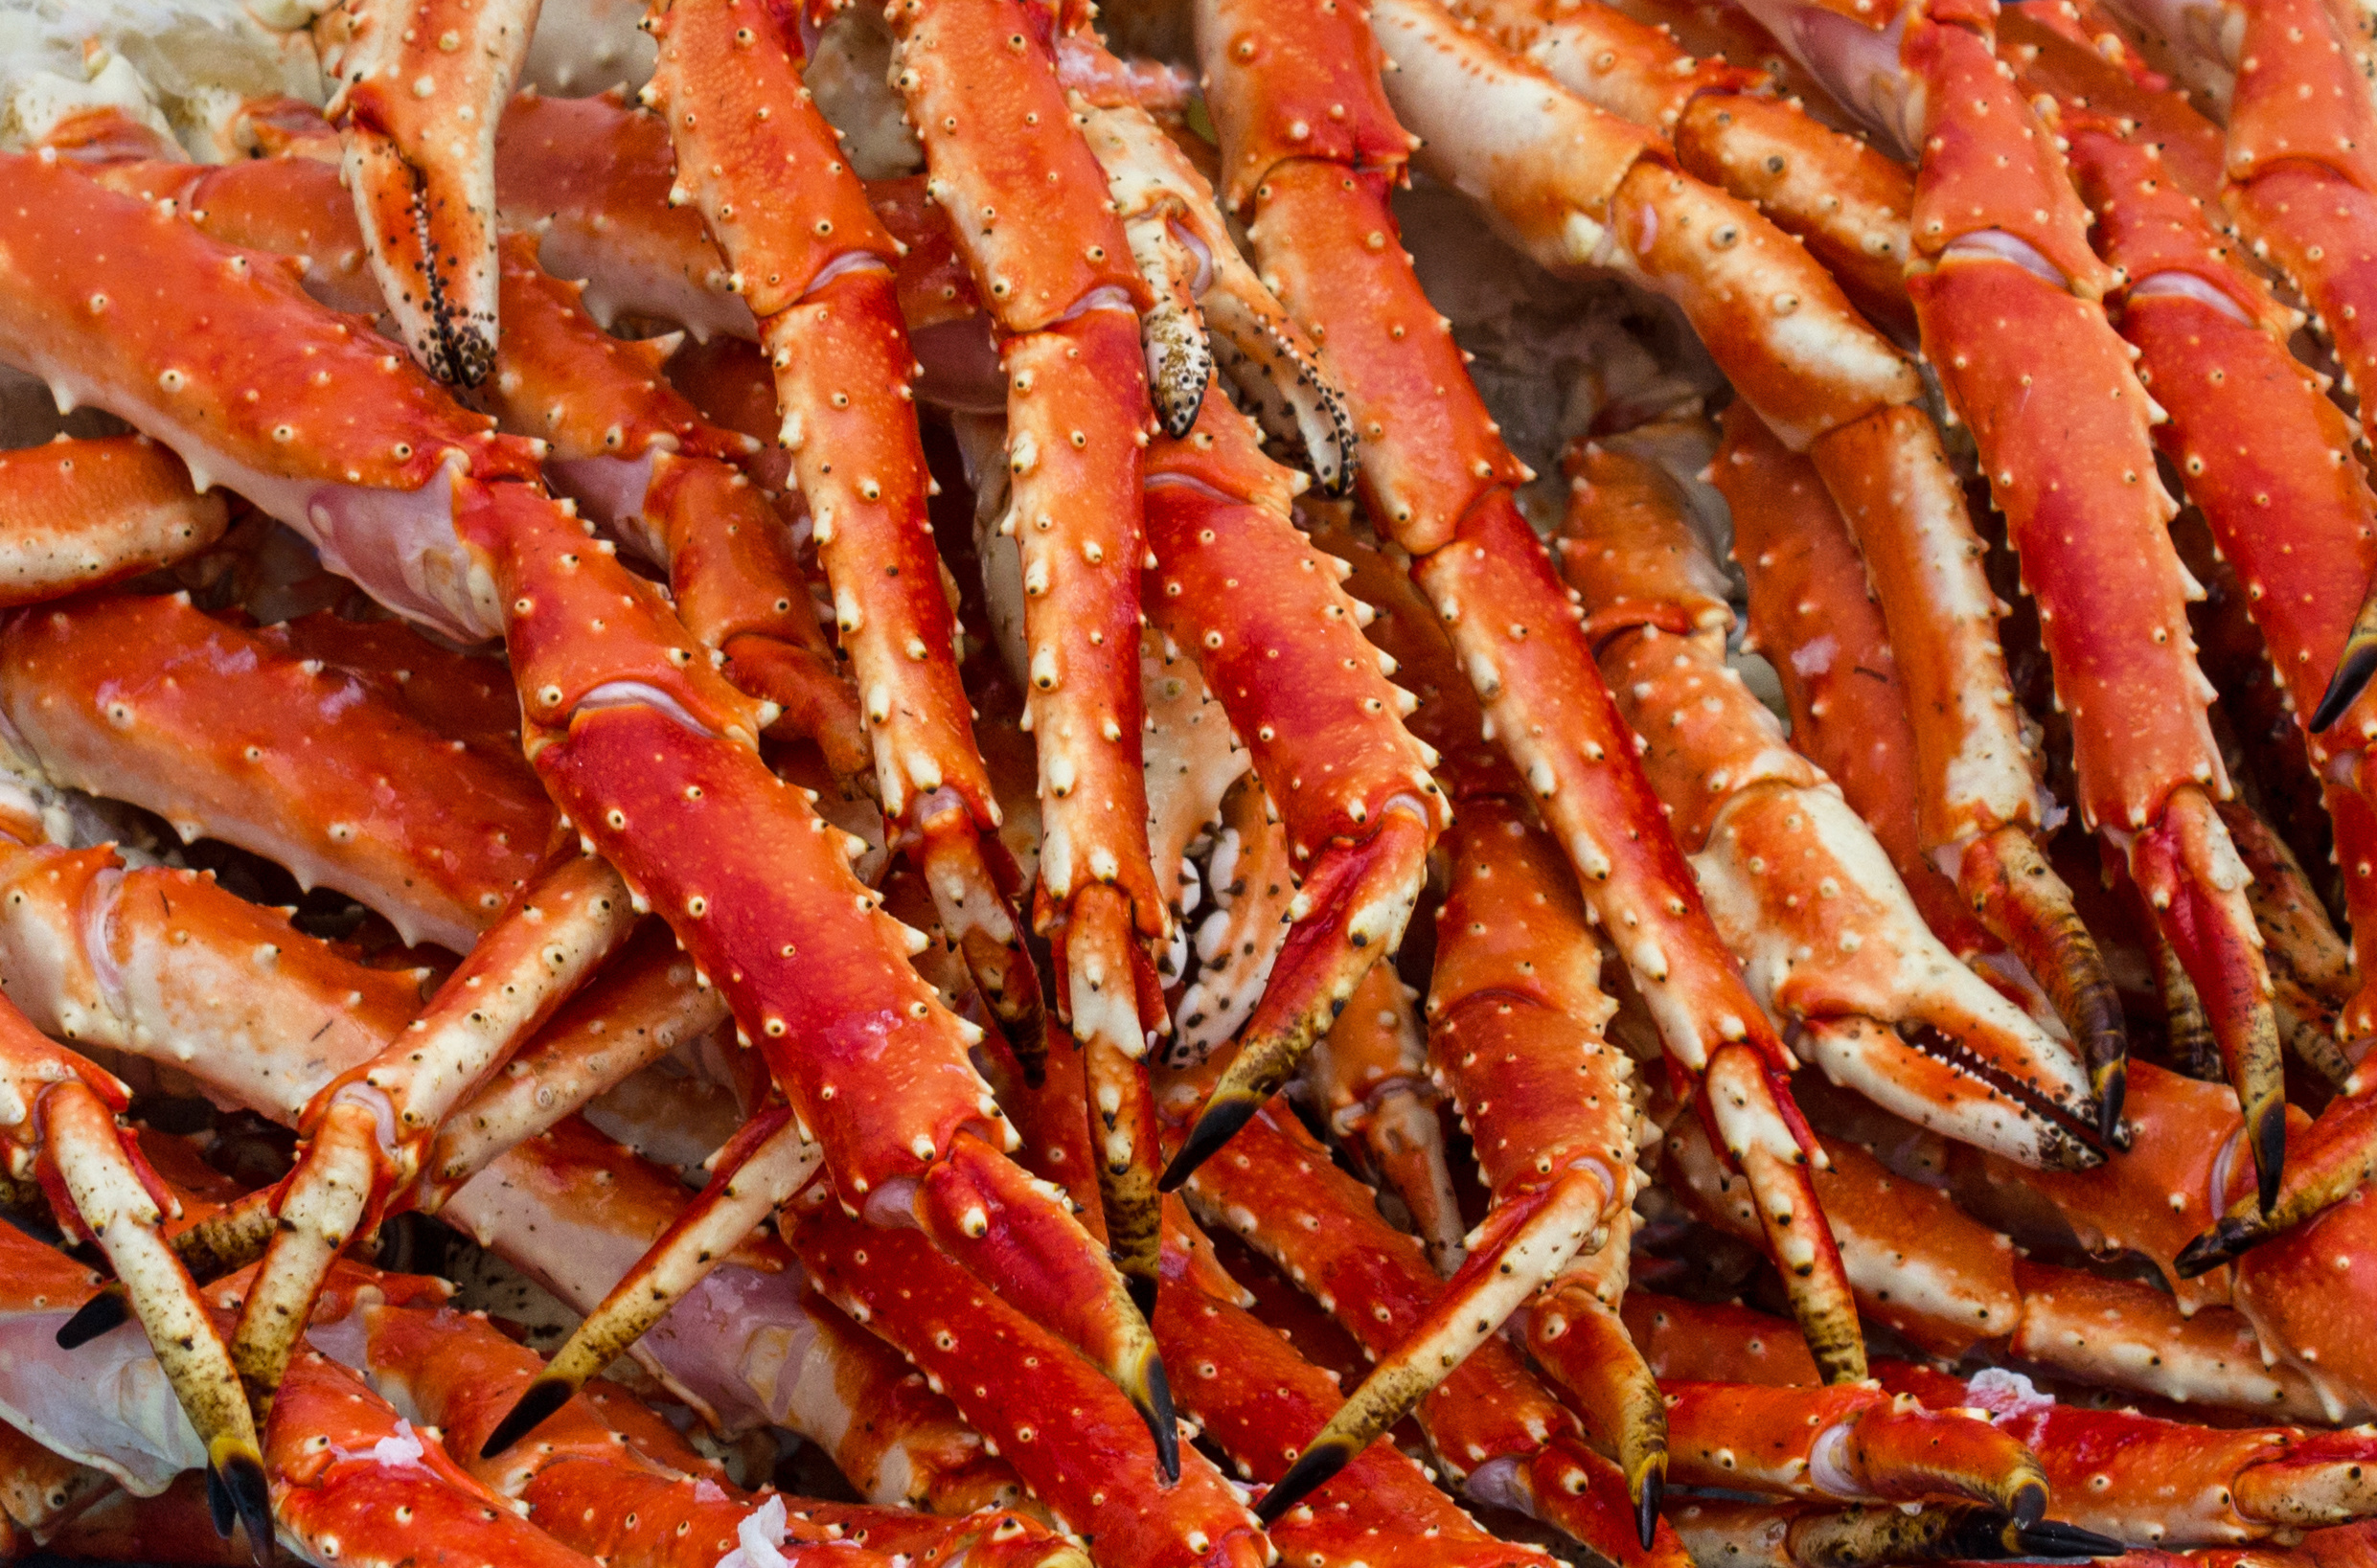 Giant Alaskan King Crab Legs by the pound